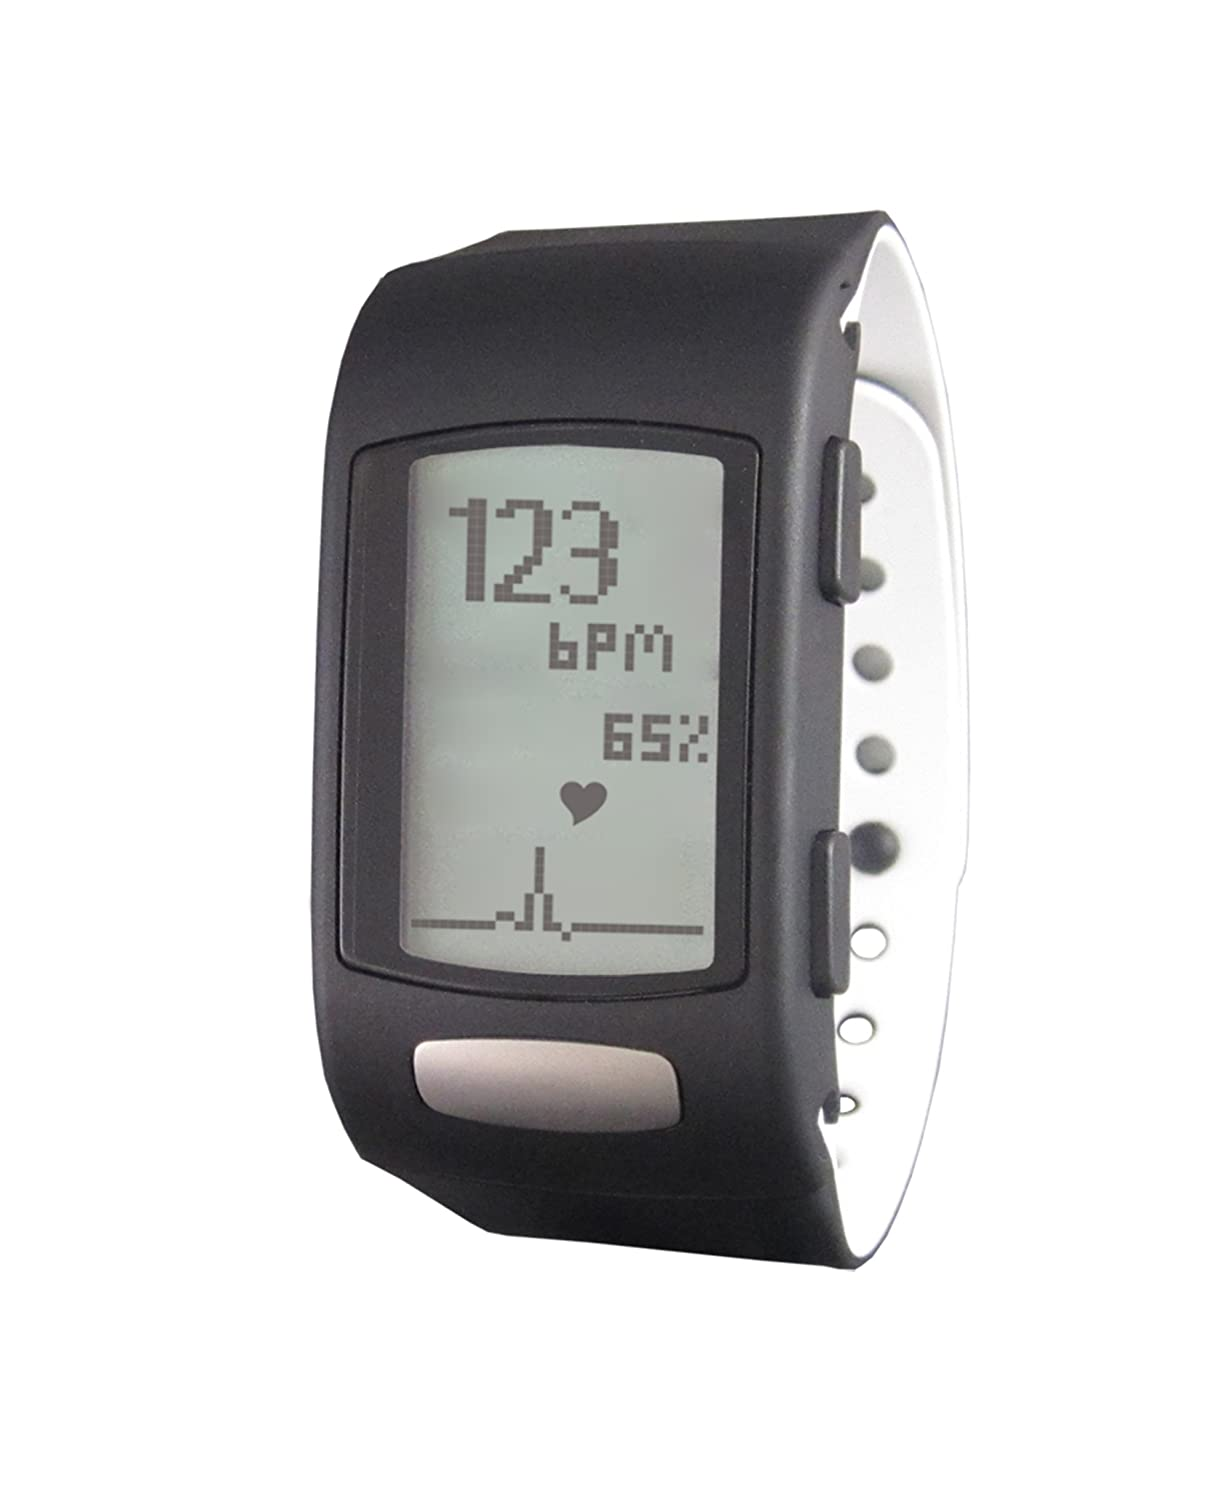 new rate tracker back heart black a alta hr photo sleep fitness monitoring activity s fitbit tracking brings watches